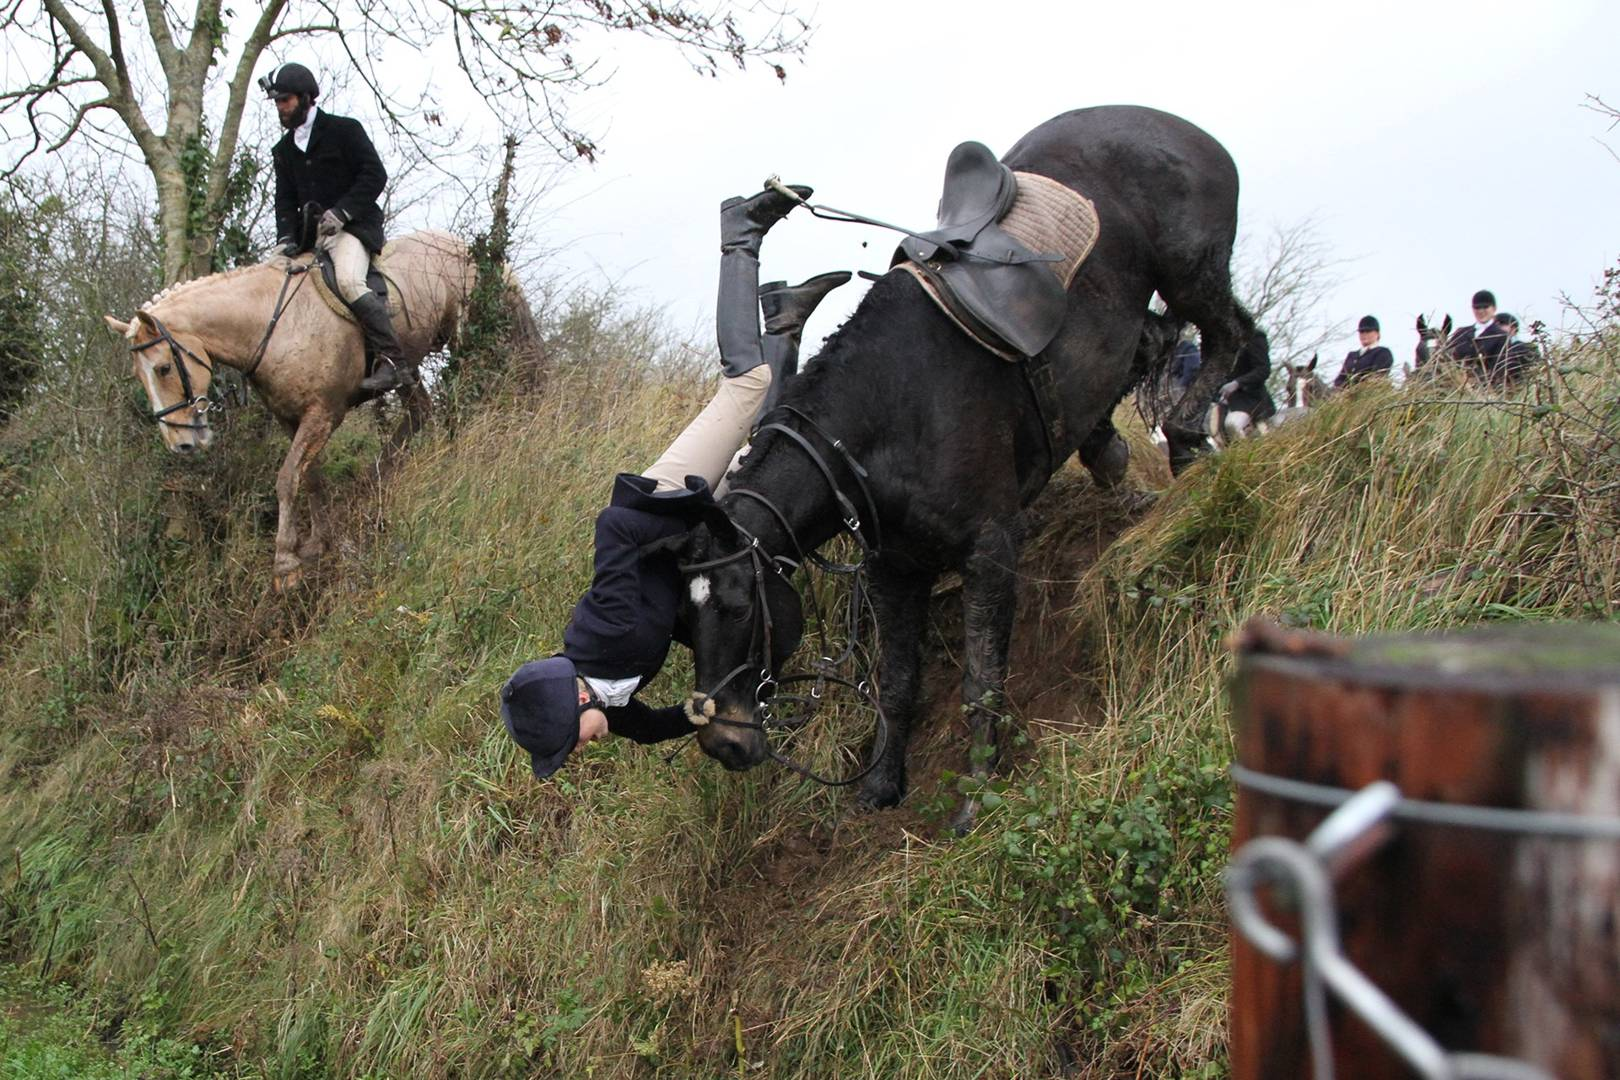 Hunted horses are shot